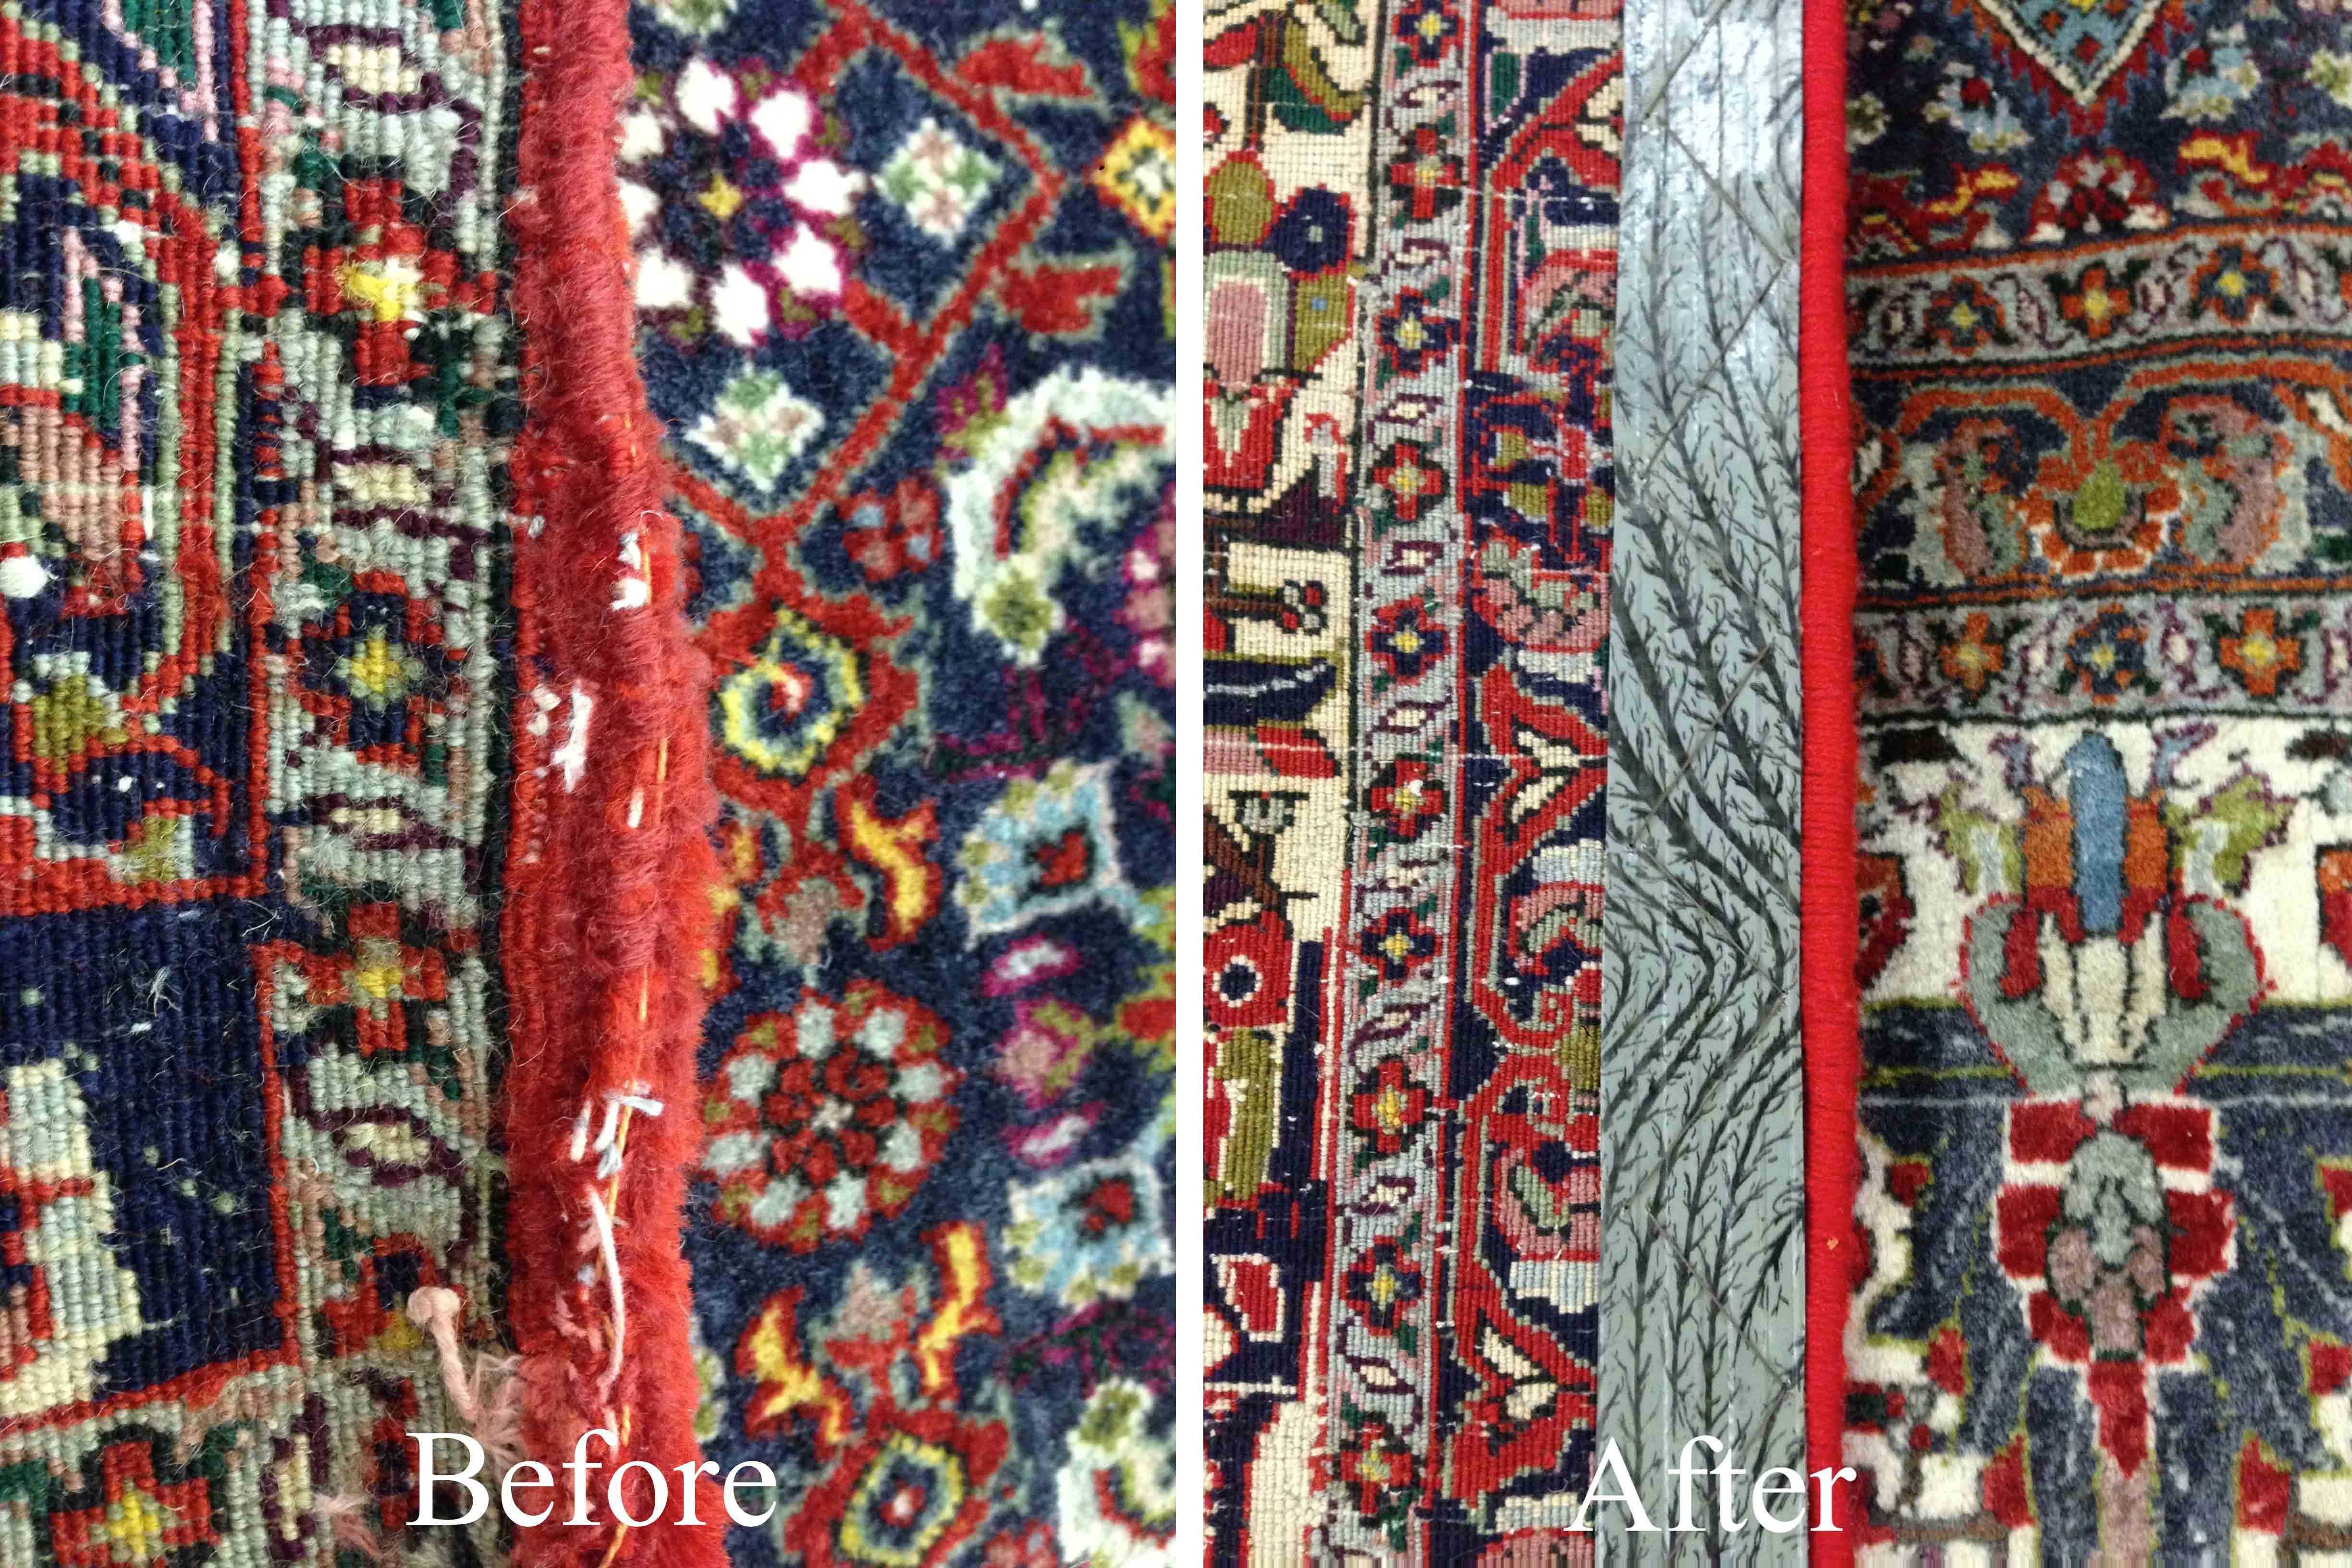 Binding With Stripes Rug Repair And Restoration